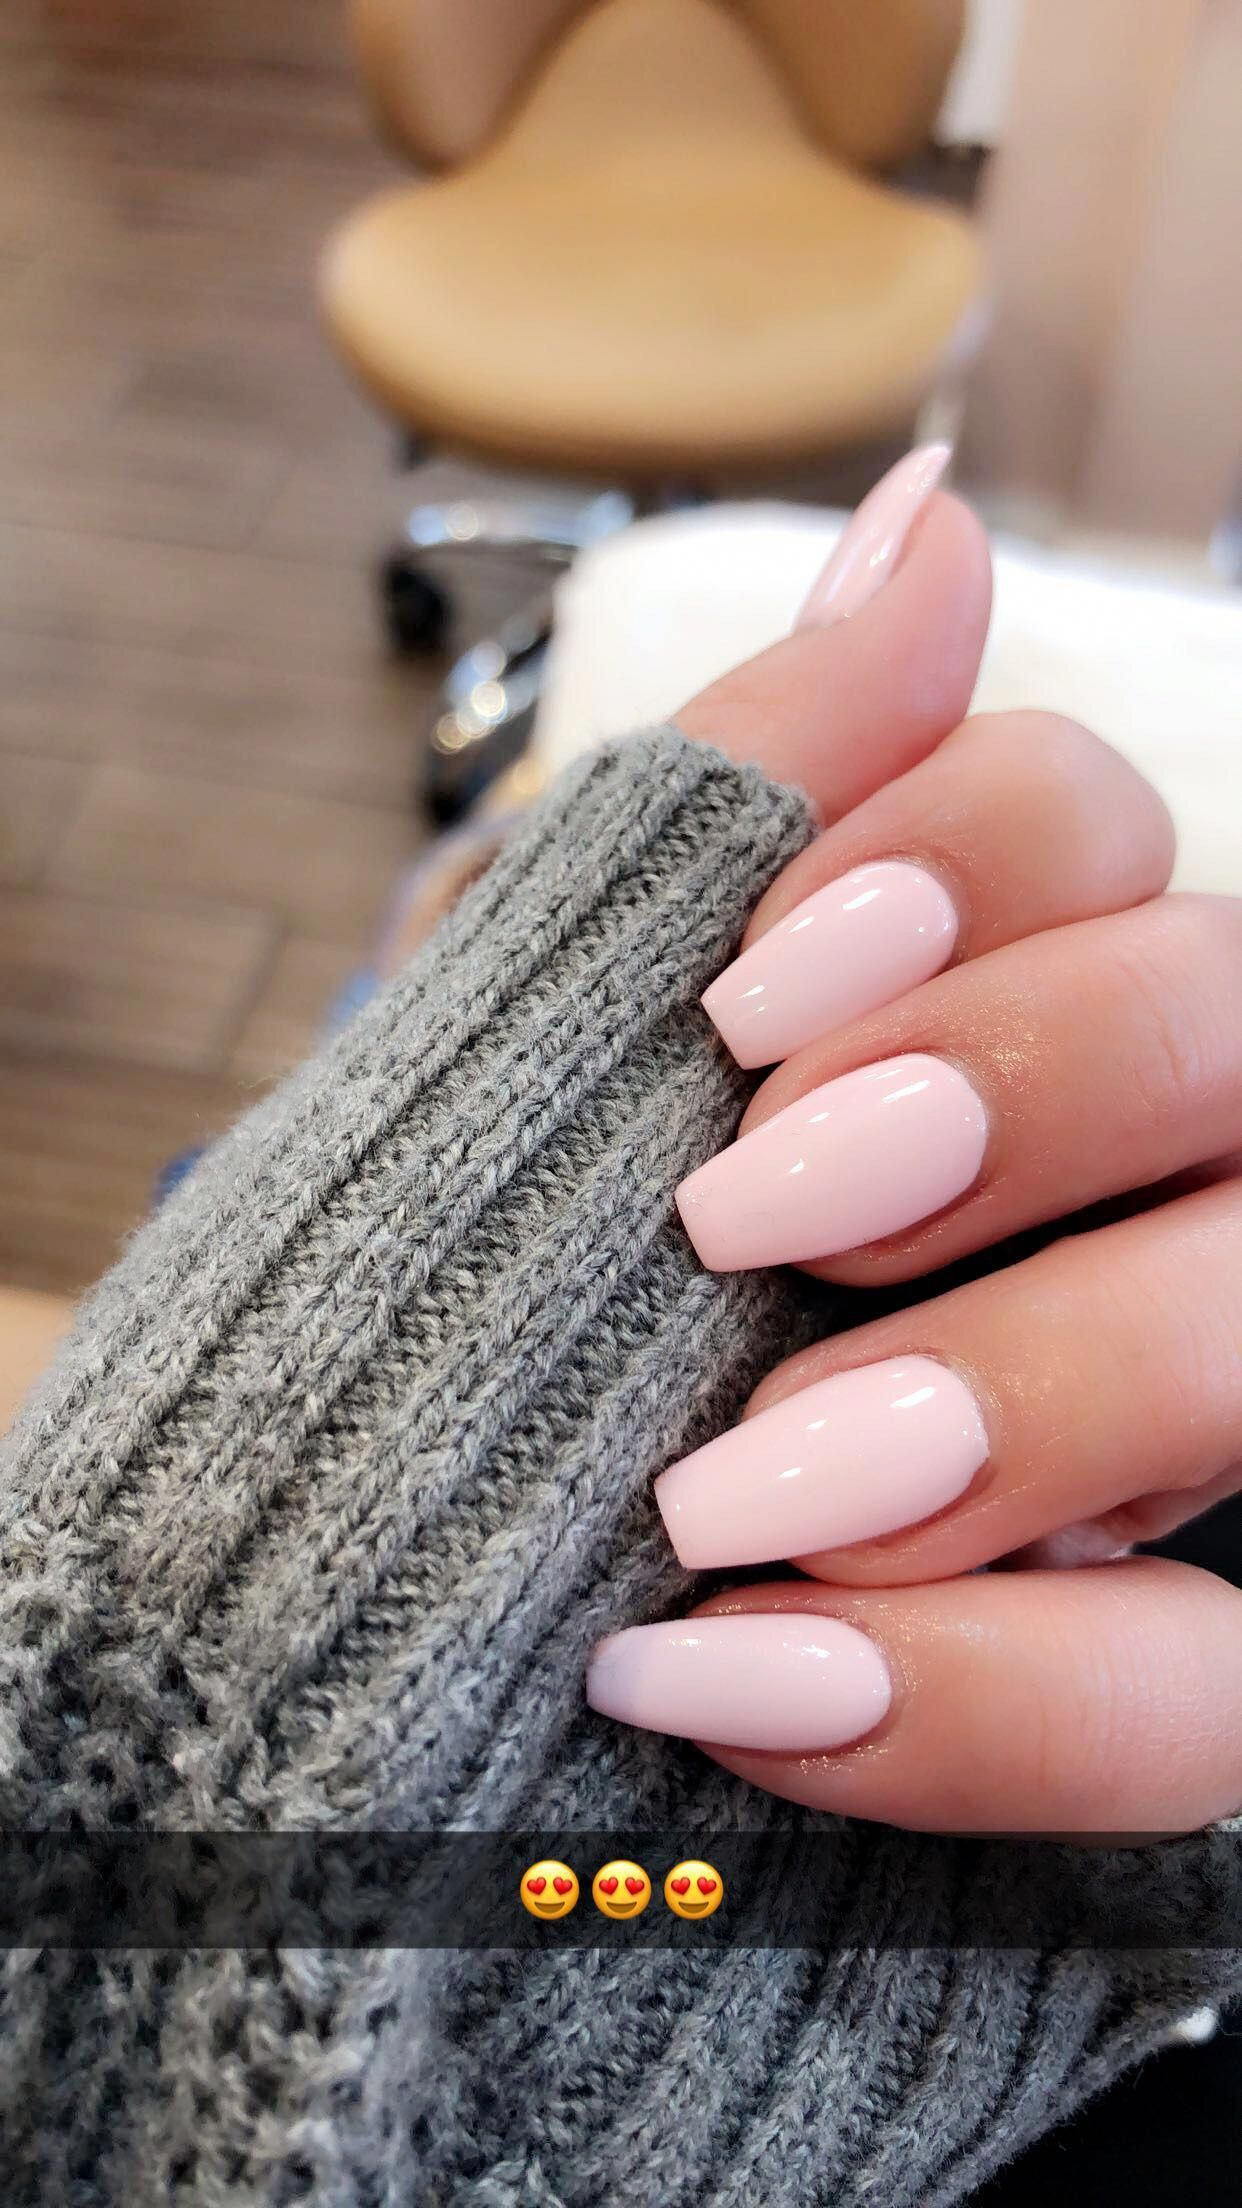 Acrylic Coffin Pink Nails Acrylicnails Pink Nails Acrylic Nails Acrylic Nail Designs